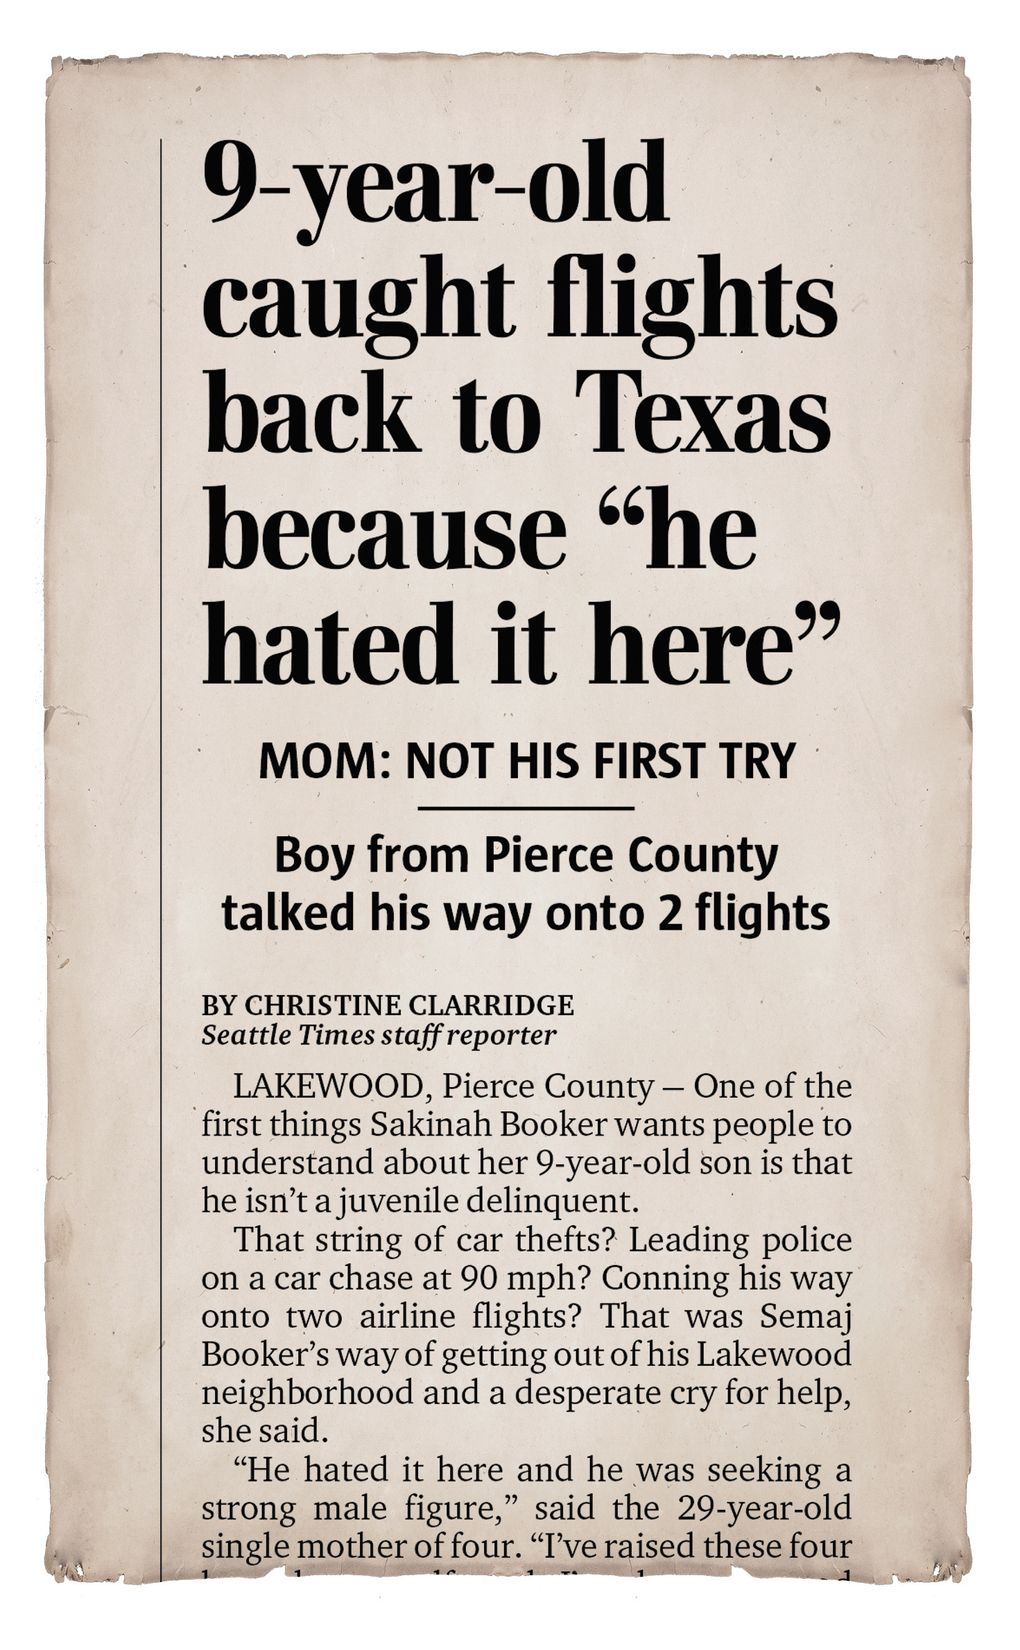 The Jan. 18, 2007 issue of The Seattle Times featured news of Semaj Booker's runaway flight to Texas on the front page.